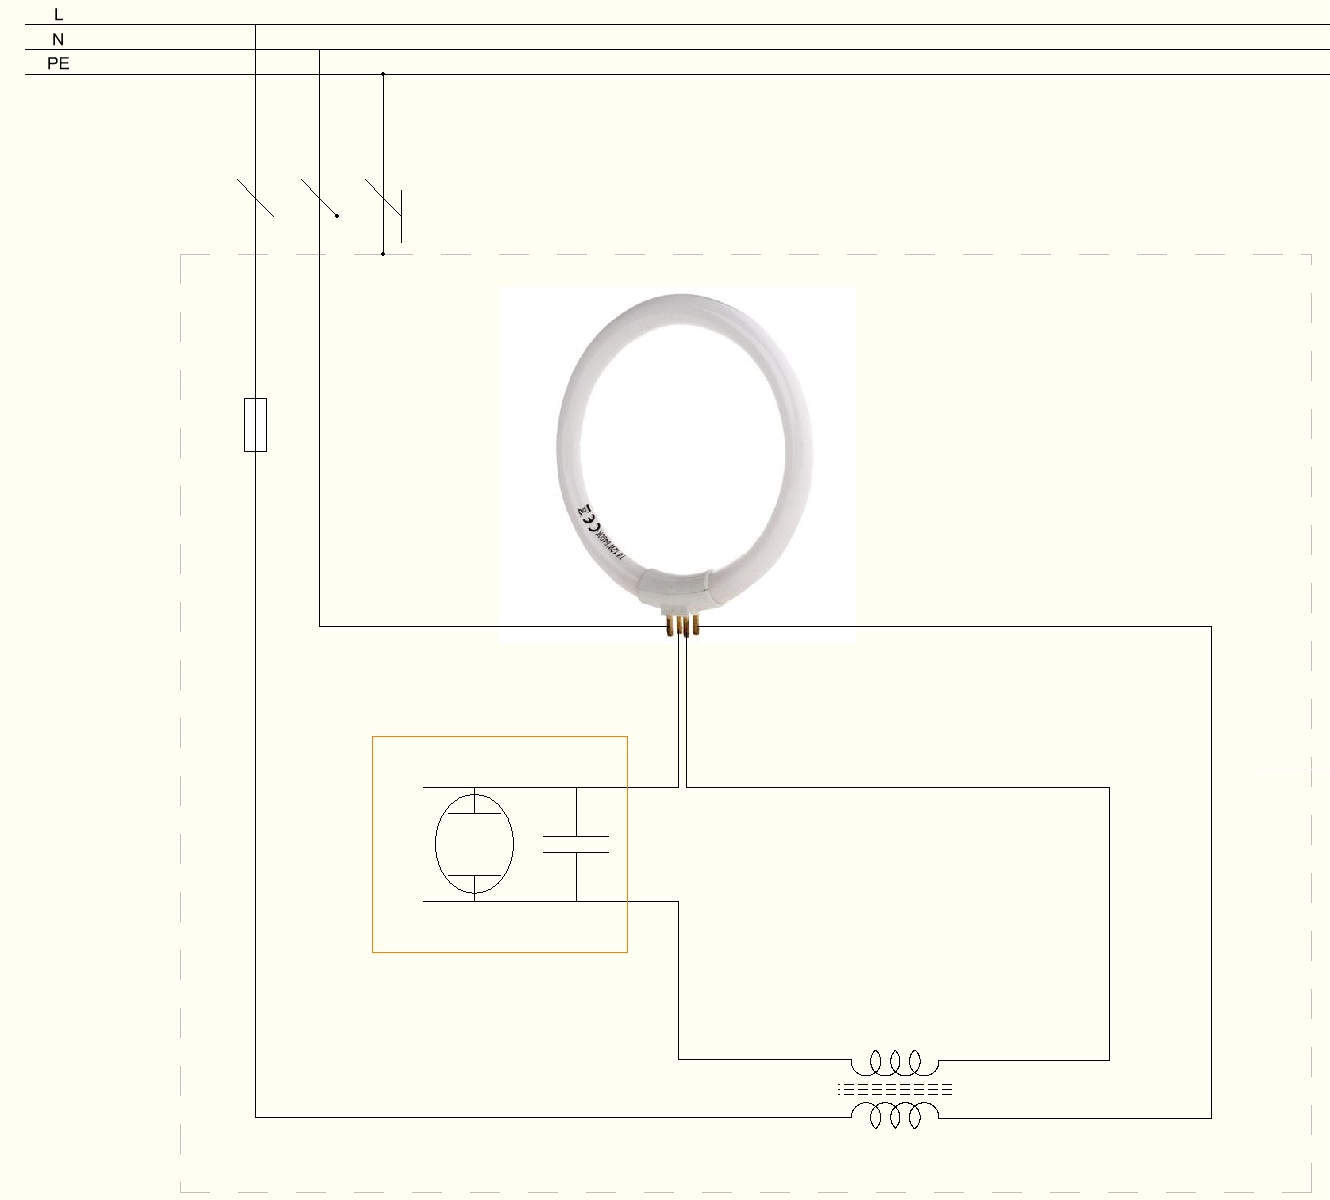 Fluorescent Circular Wiring Diagrams Schematics T8 Light Fixture Diagram File How To Wire Lamp Wikimedia Commons Rh Org For Lights